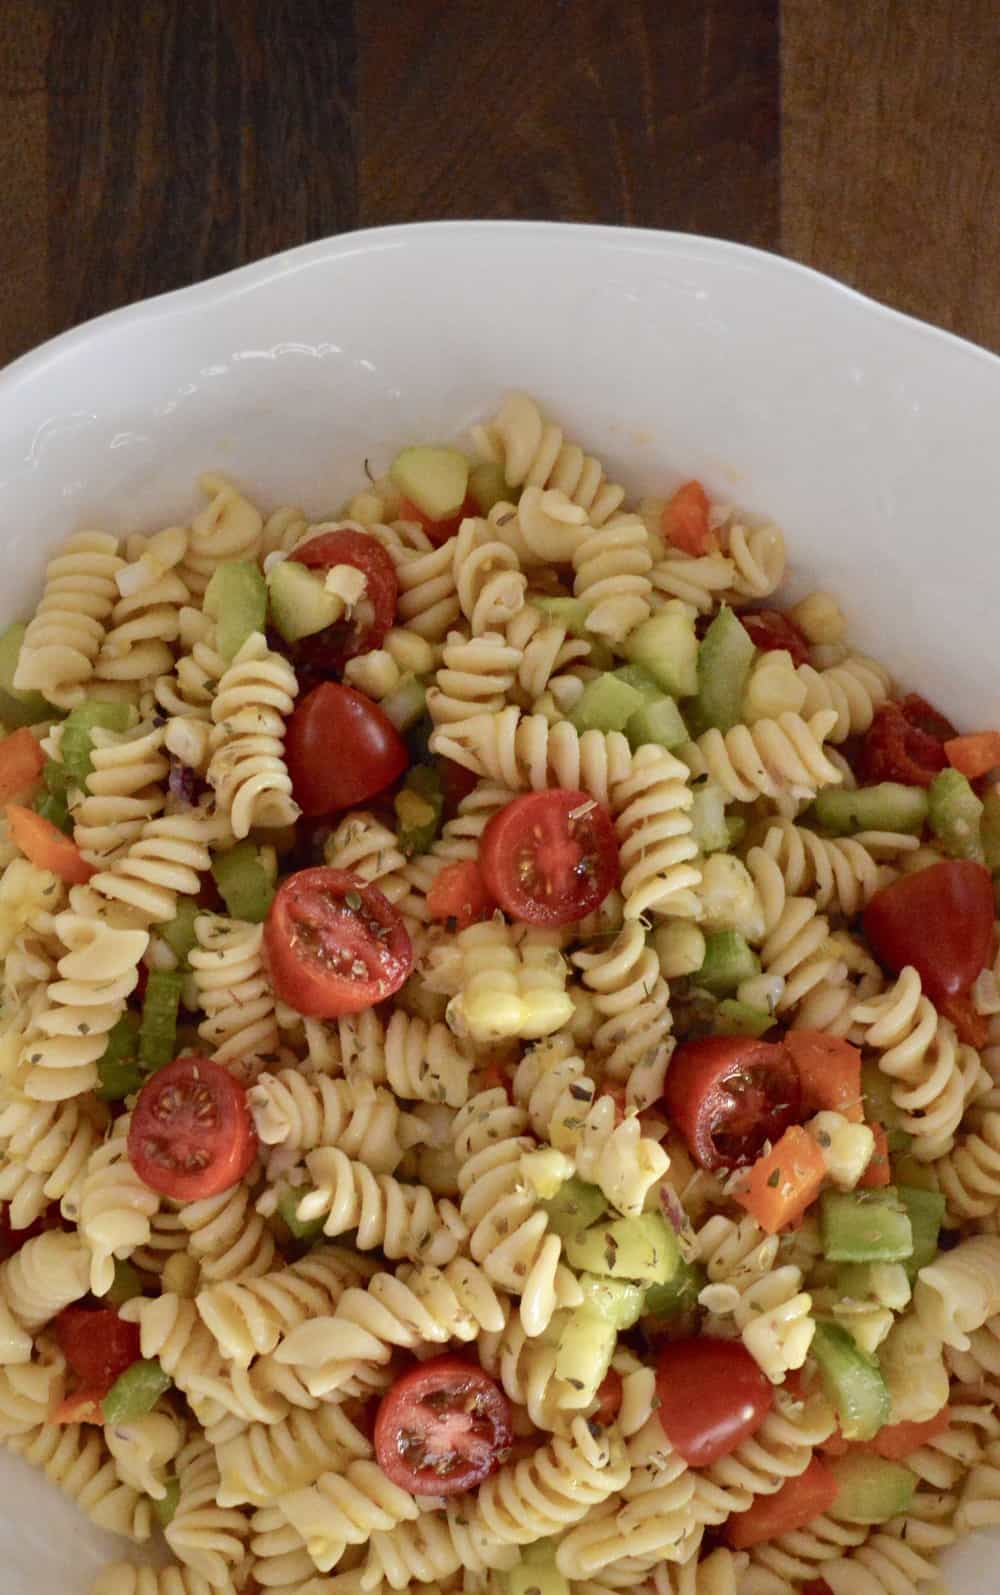 pasta salad with lots of vegetable and corn in a white bowl on a wood surface